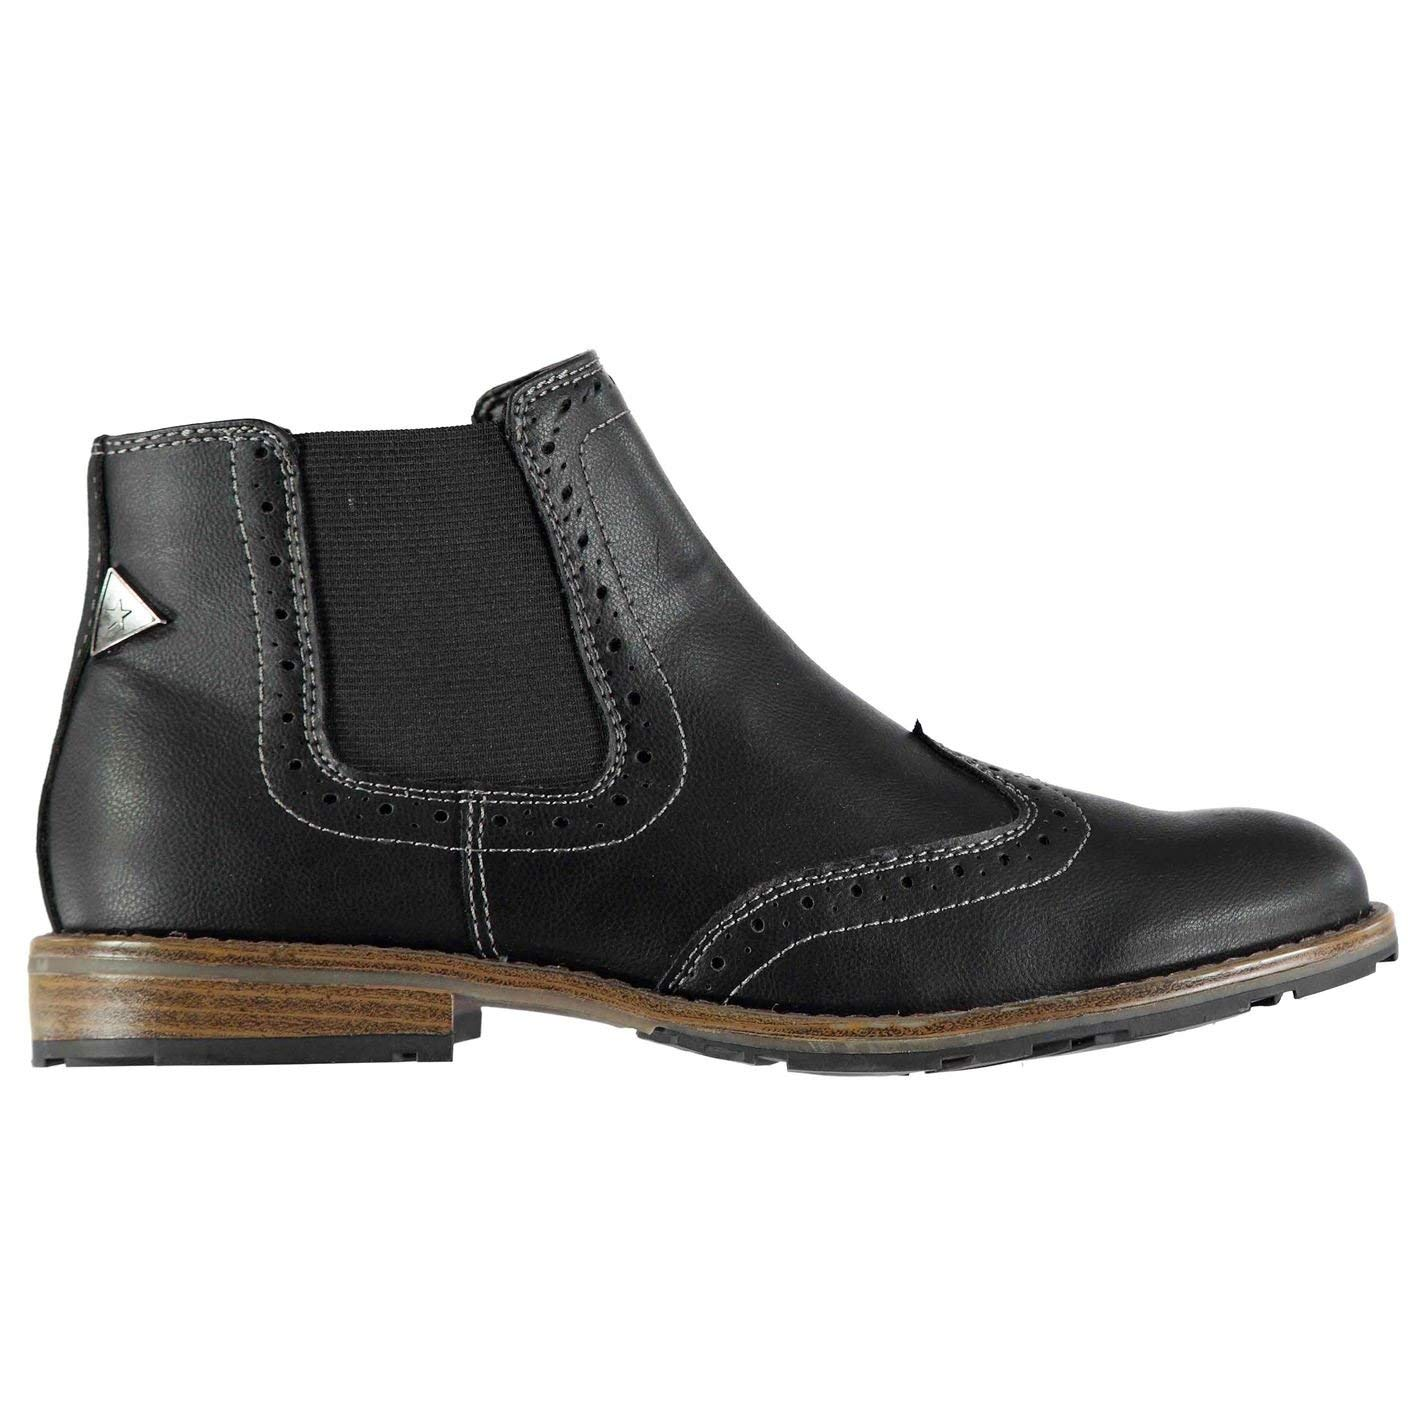 a59cbbfc0 Get Quotations · Soviet Mens Chelsea Brogues Boots Shoes Slip On Slight Heel